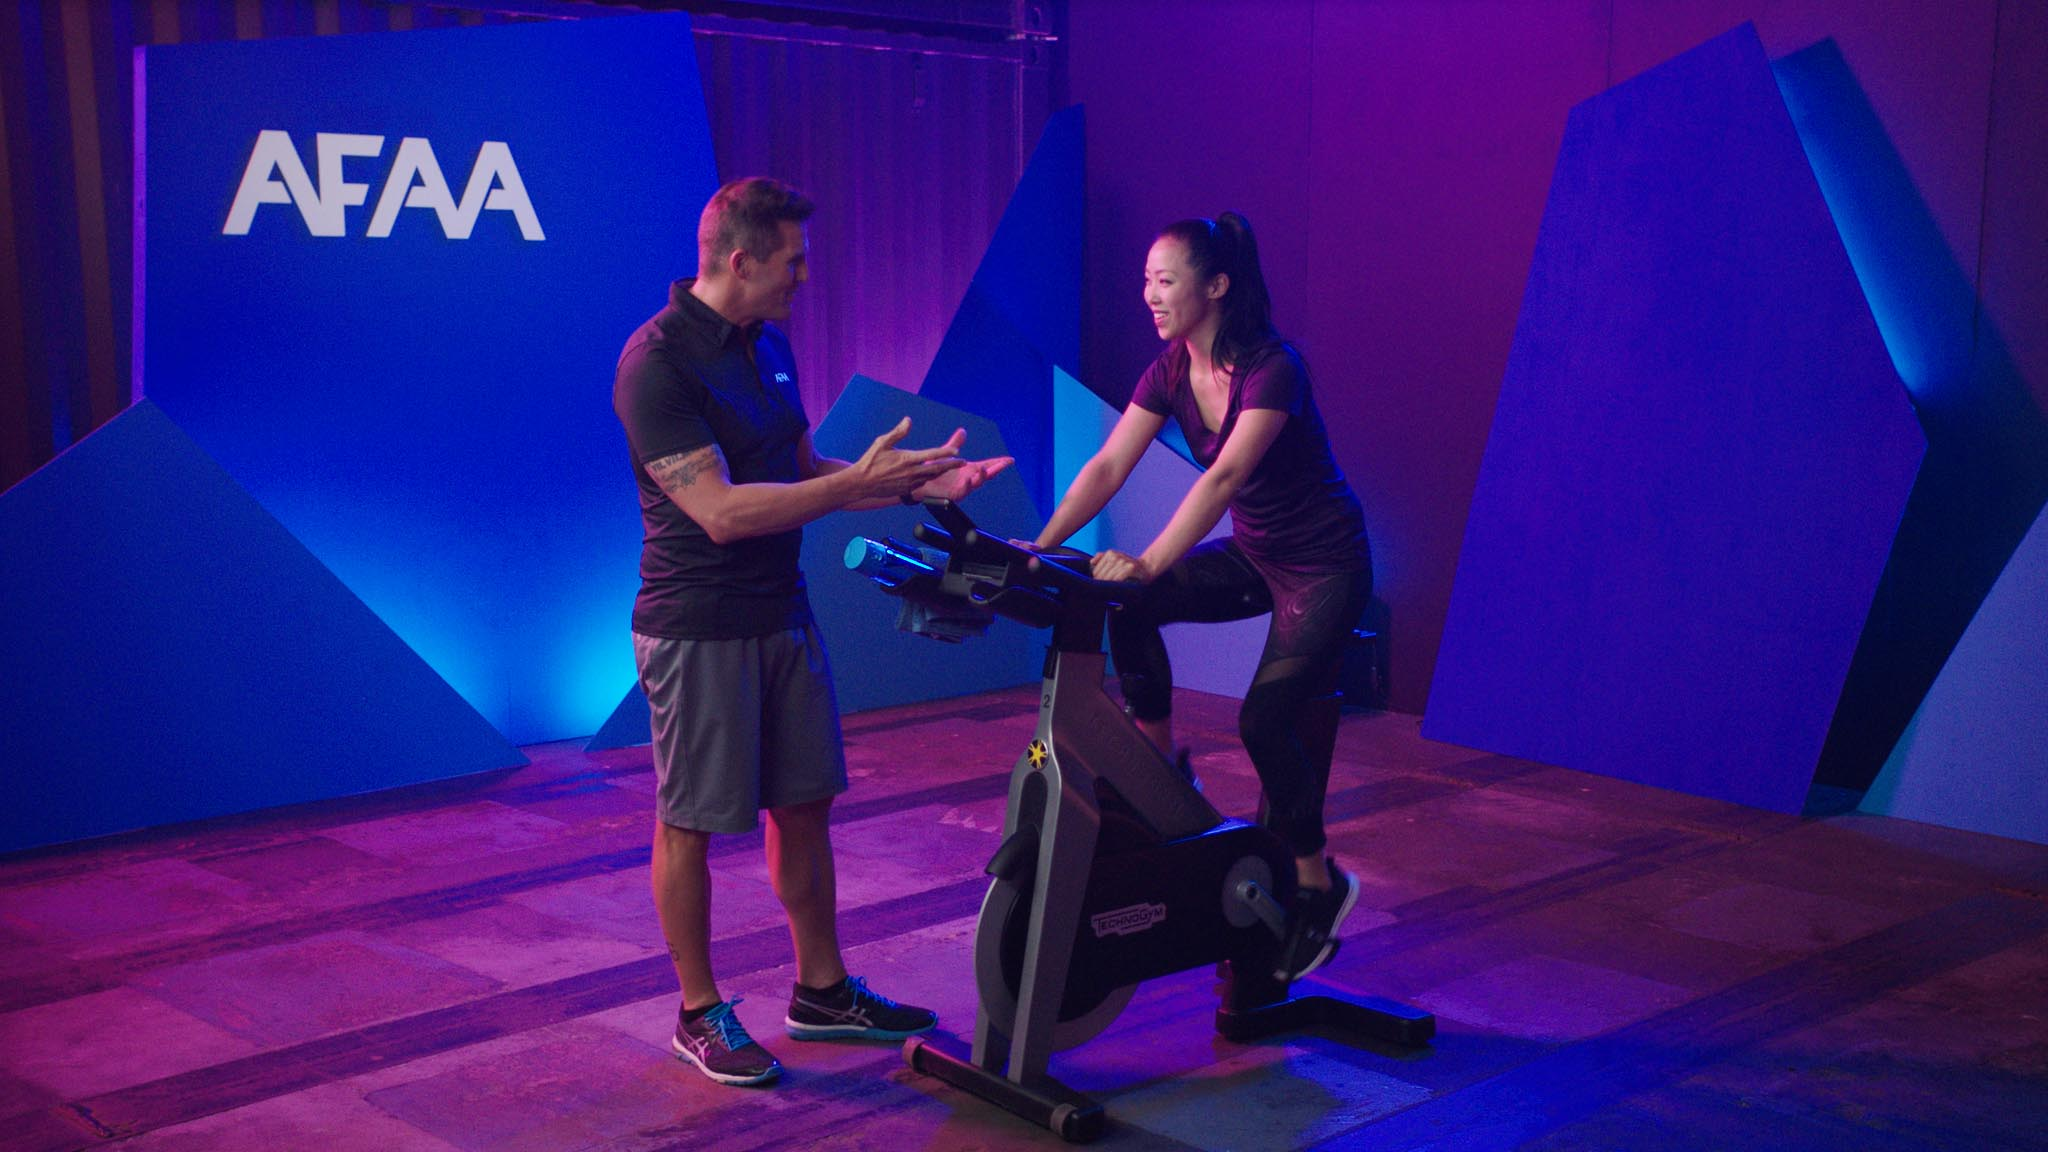 Indoor cycler learning from instructor